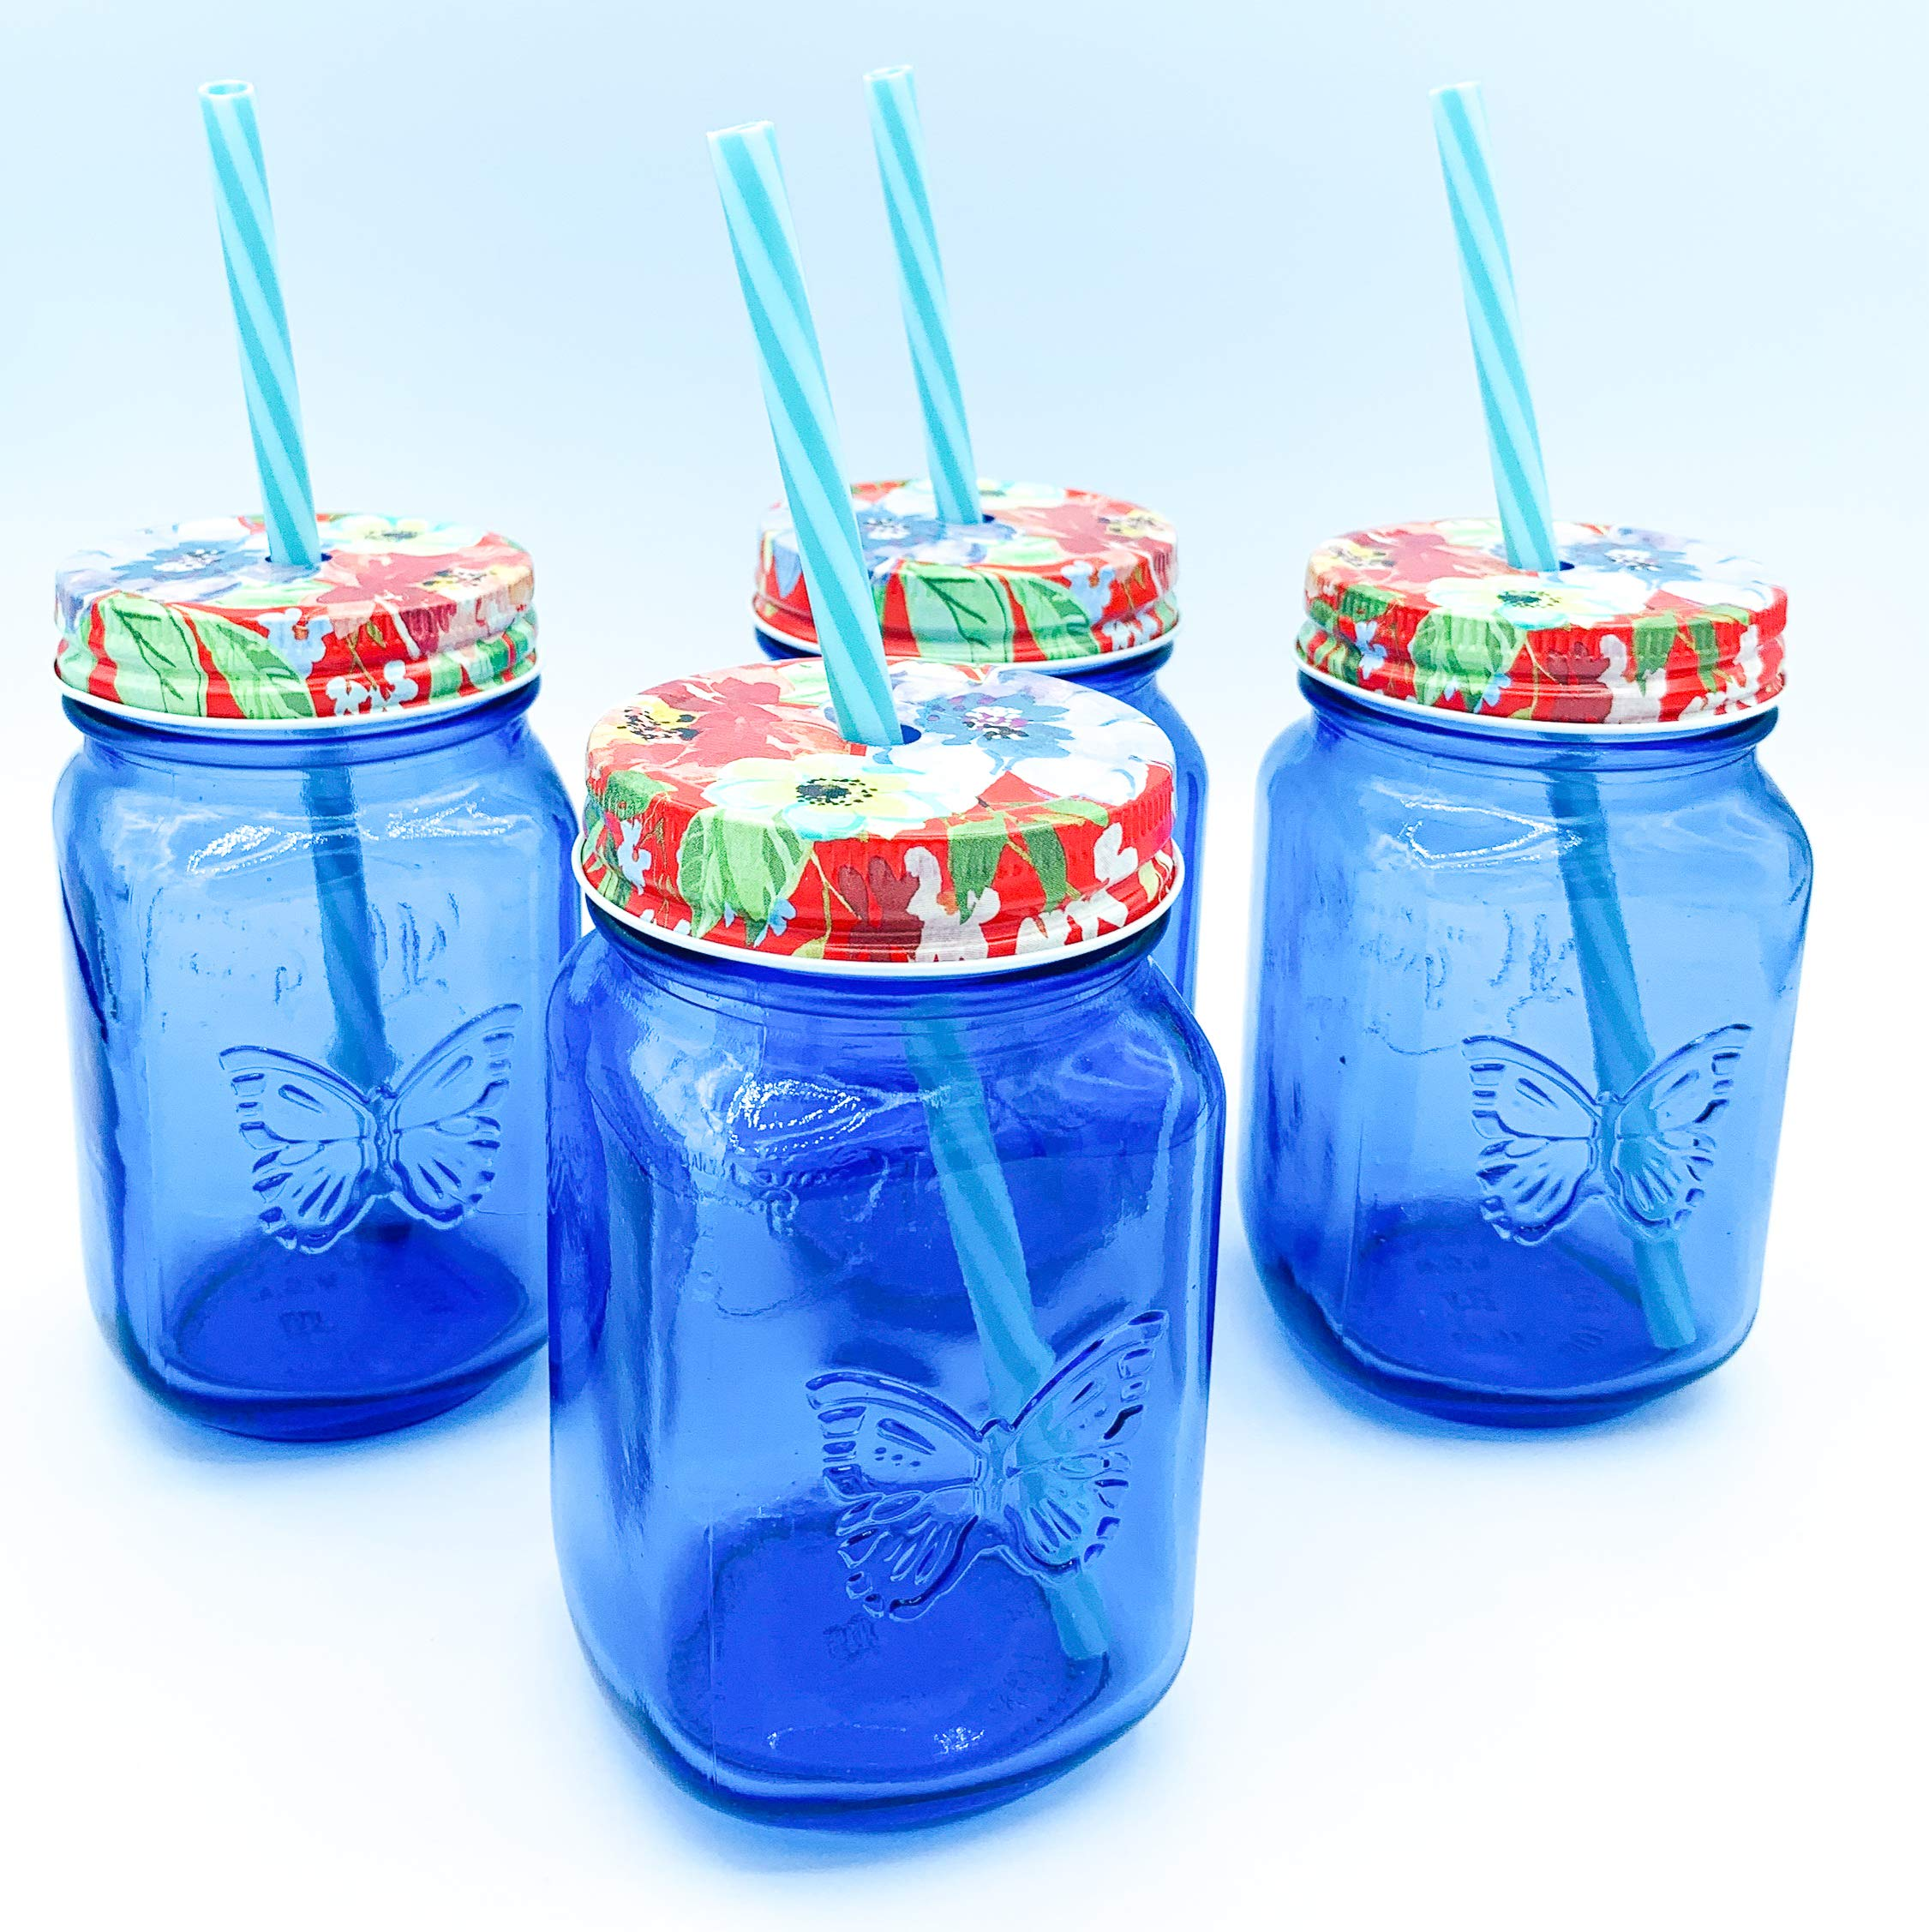 The Pioneer Woman Sapphire 16 oz. Drinking Mason Jars with Lids and Straws